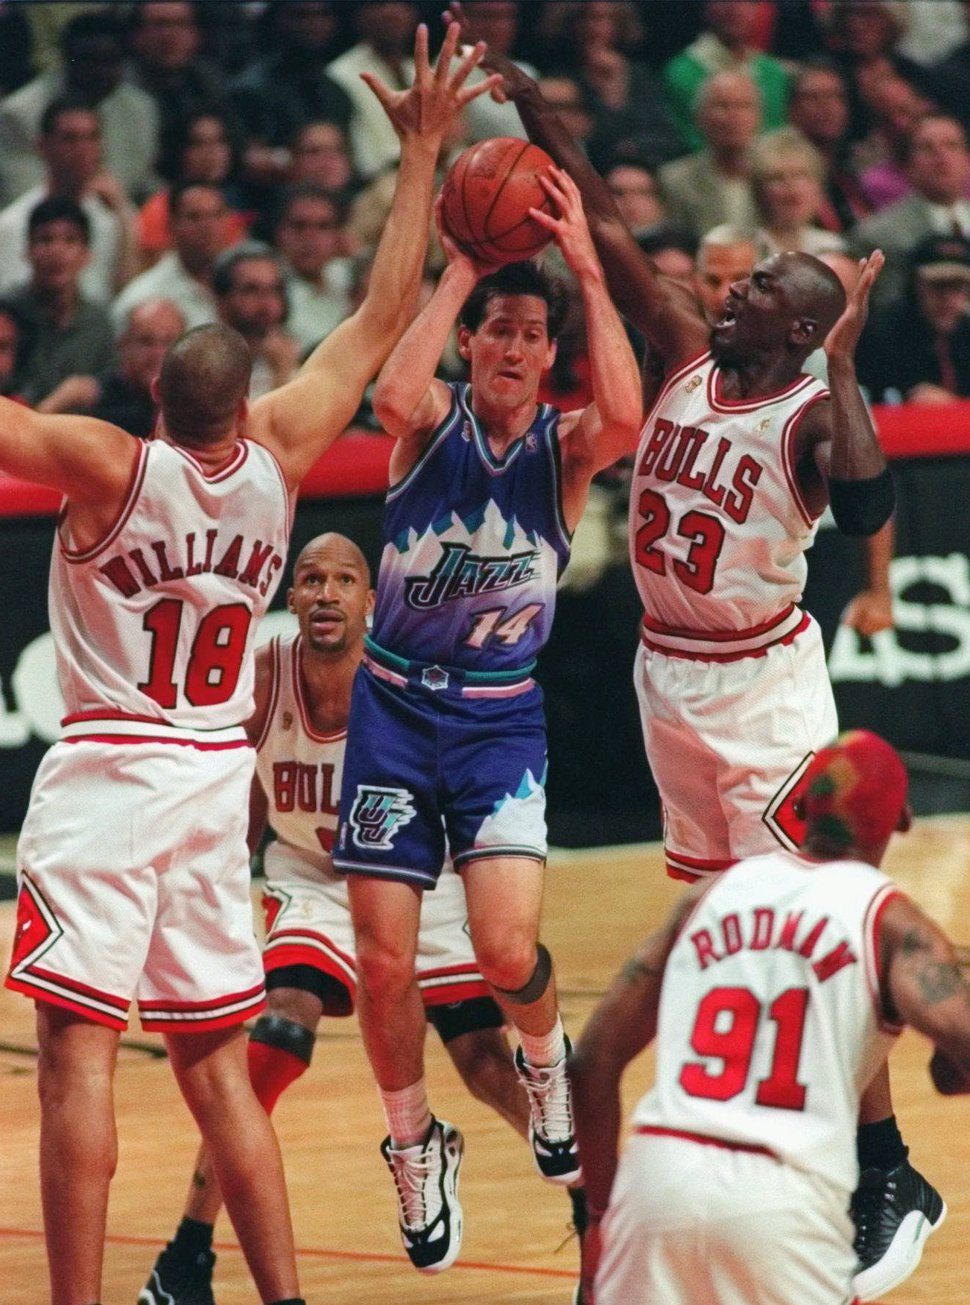 Utah Jazz guard Jeff Hornacek slips between Chicago Bulls' Brian Williams (18) and Michael Jordan (23) during the first quarter of Game 6 of the NBA Finals on Friday, June 13, 1997, in Chicago. Watching are the Bulls' Dennis Rodman and Ron Harper, rear. (AP Photo/Michael Conroy)